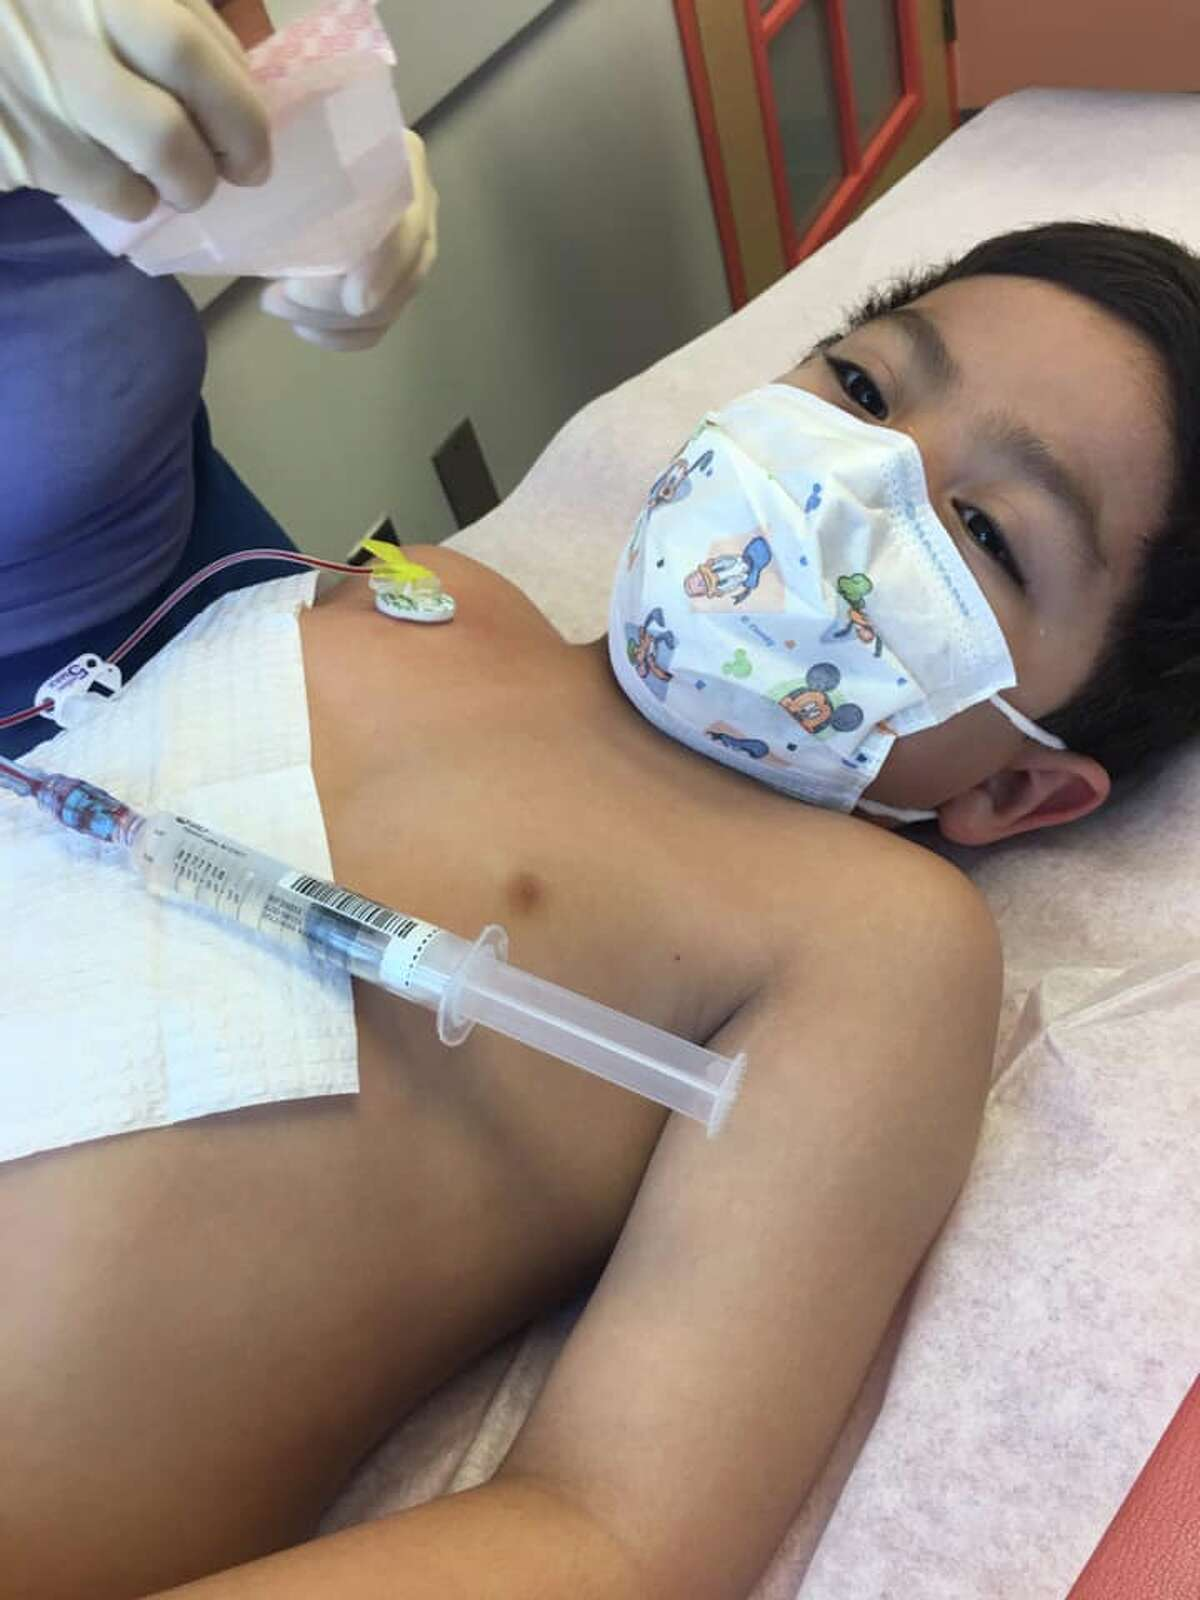 Ethan Perez was diagnosed with acute lymphoblastic leukemi, also known as ALL, two years ago.